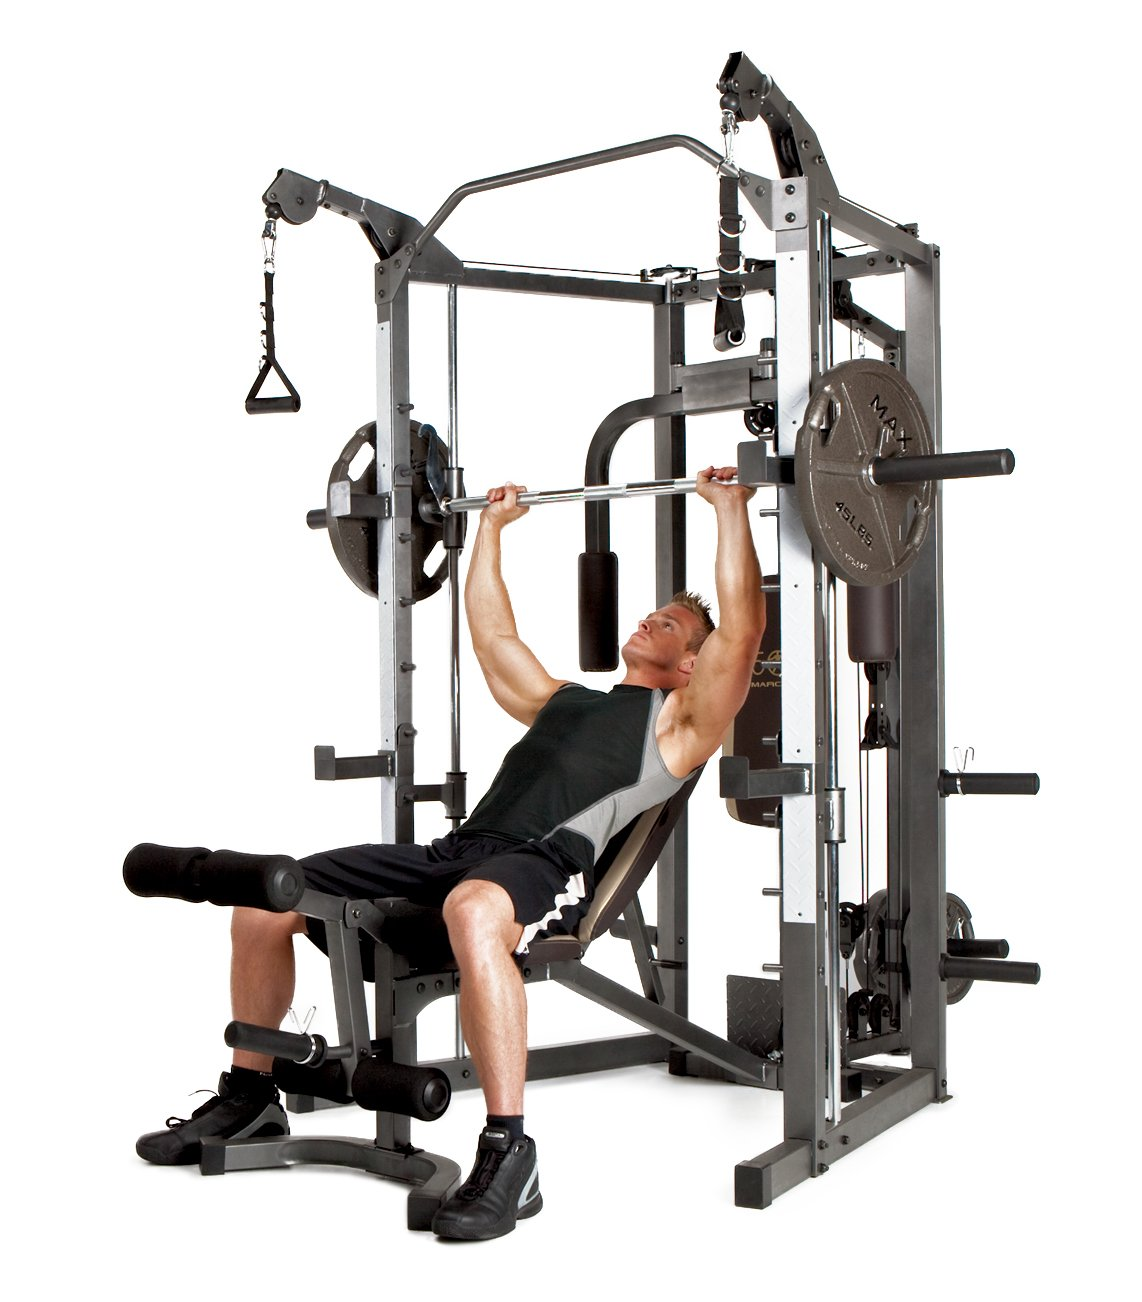 Marcy Smith Machine with Bench and Weight Bar – Home Gym Equipment SM-4008 by Marcy (Image #3)